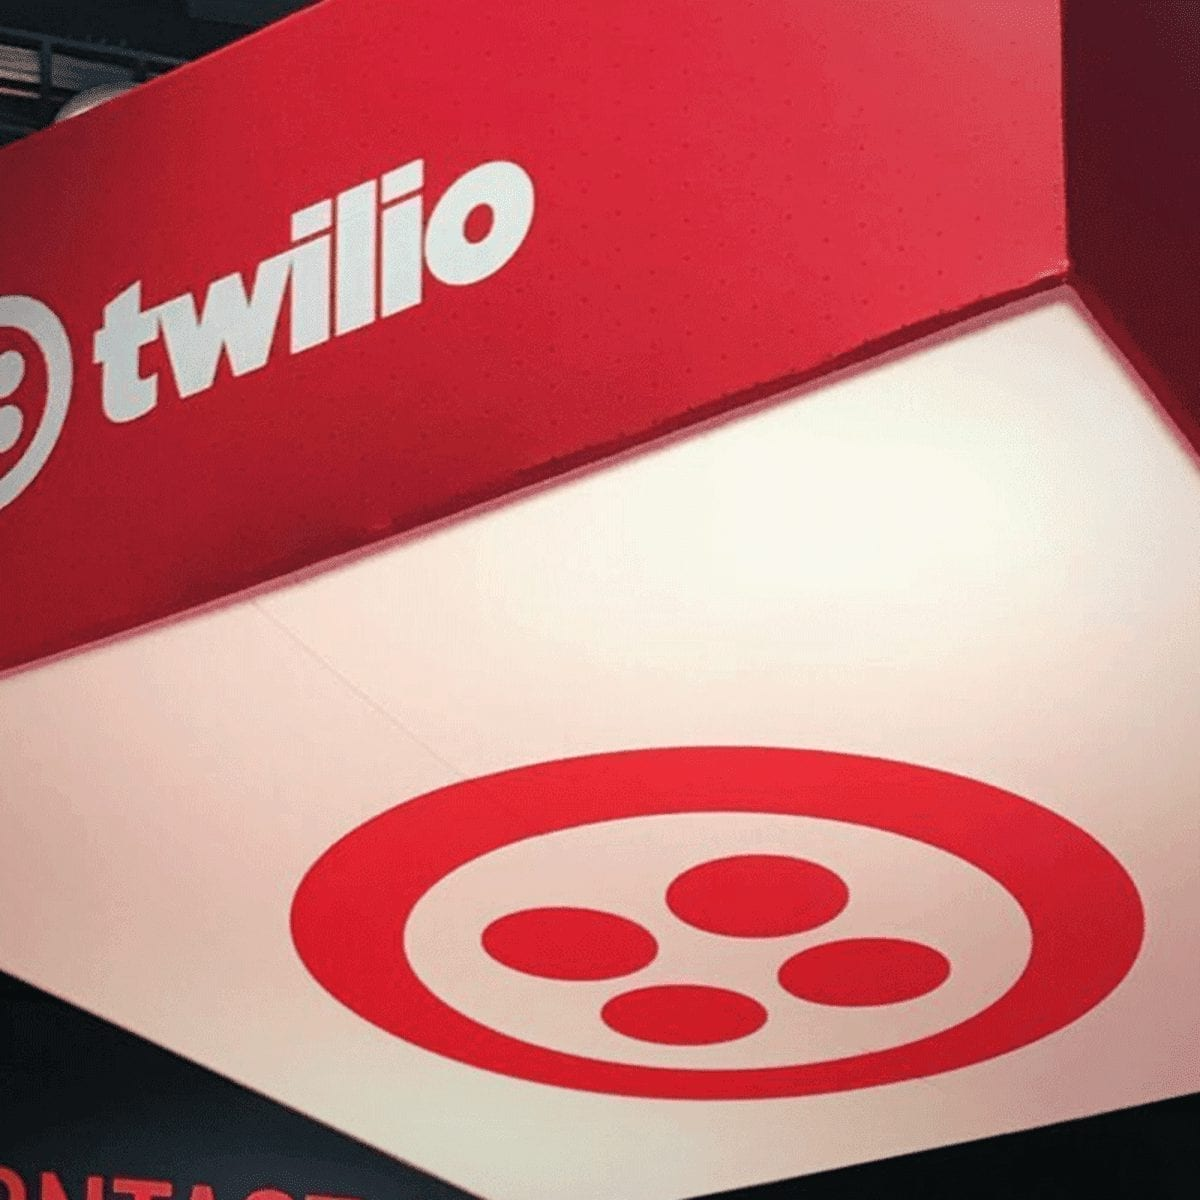 How to add a Verified Phone Number or Caller ID with Twilio